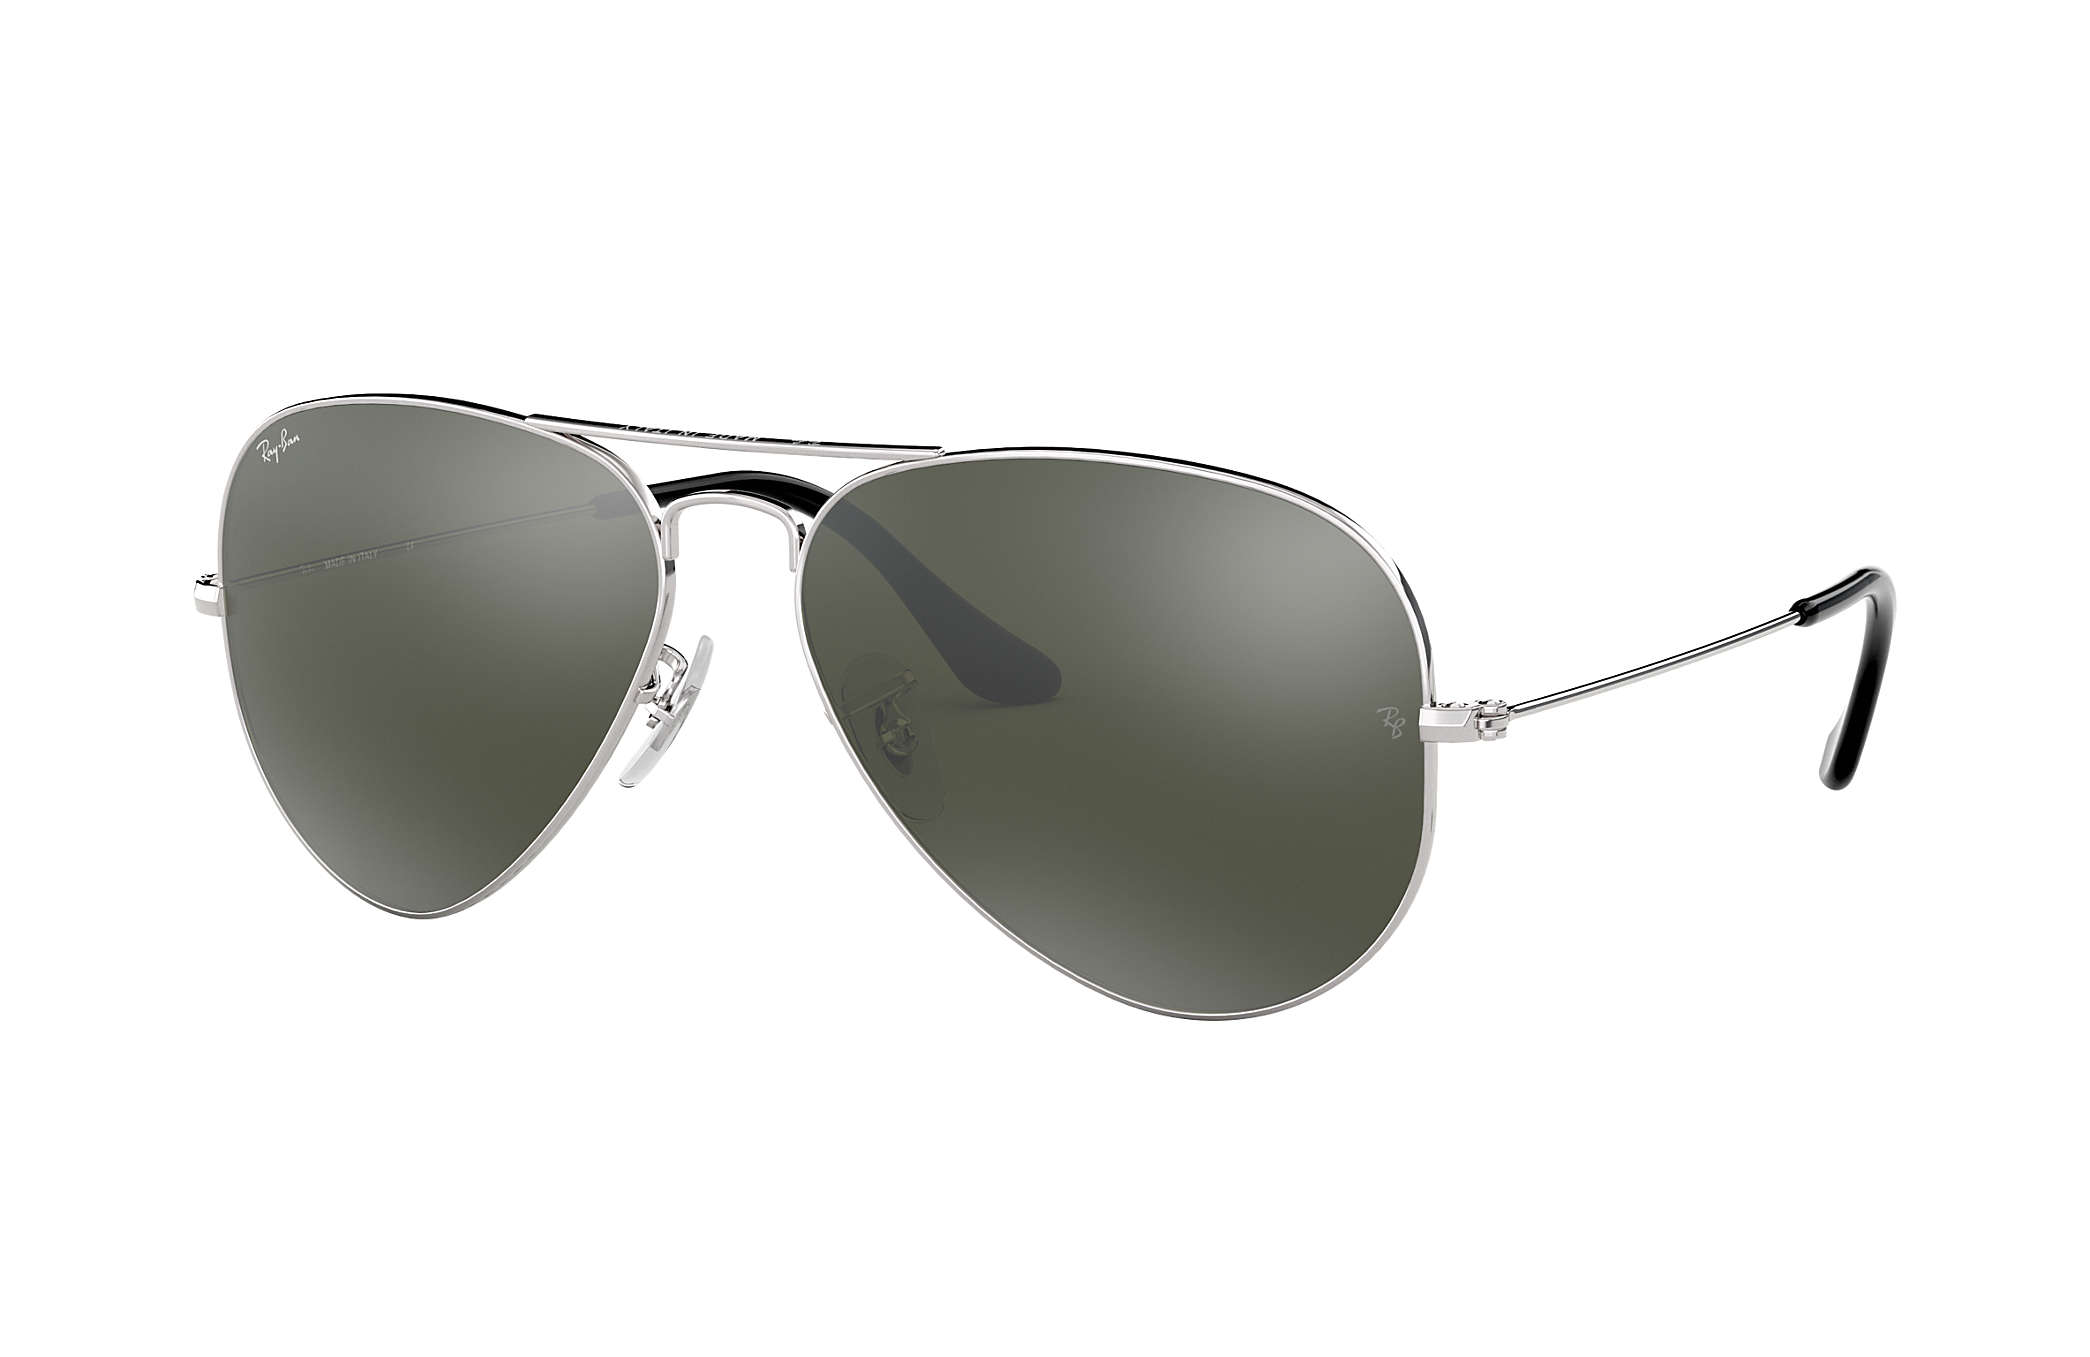 polarized mirrored aviator sunglasses  Ray-Ban Aviator Mirror Silver, RB3025